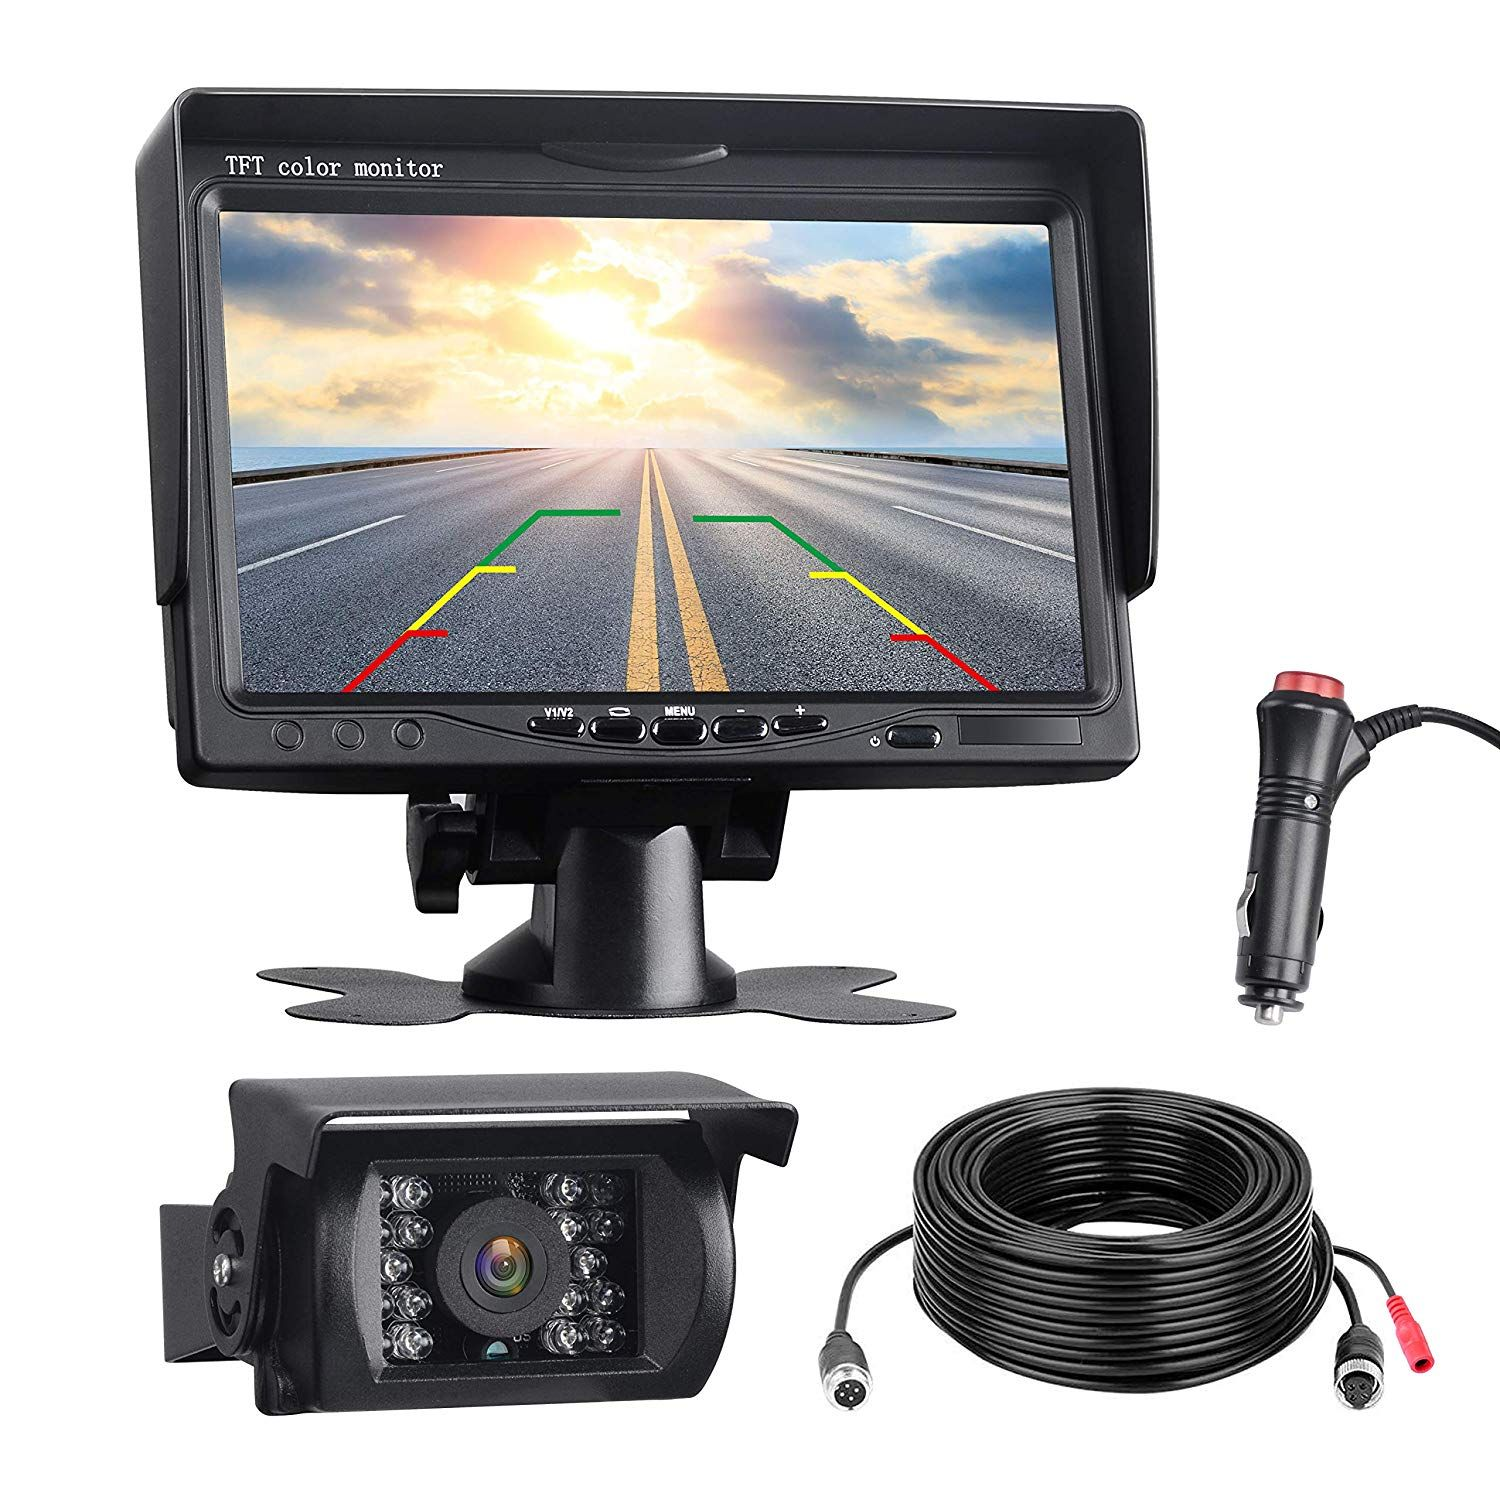 DVKNM Upgrade Backup Camera Monitor Kit - Best Wireless Backup Cameras